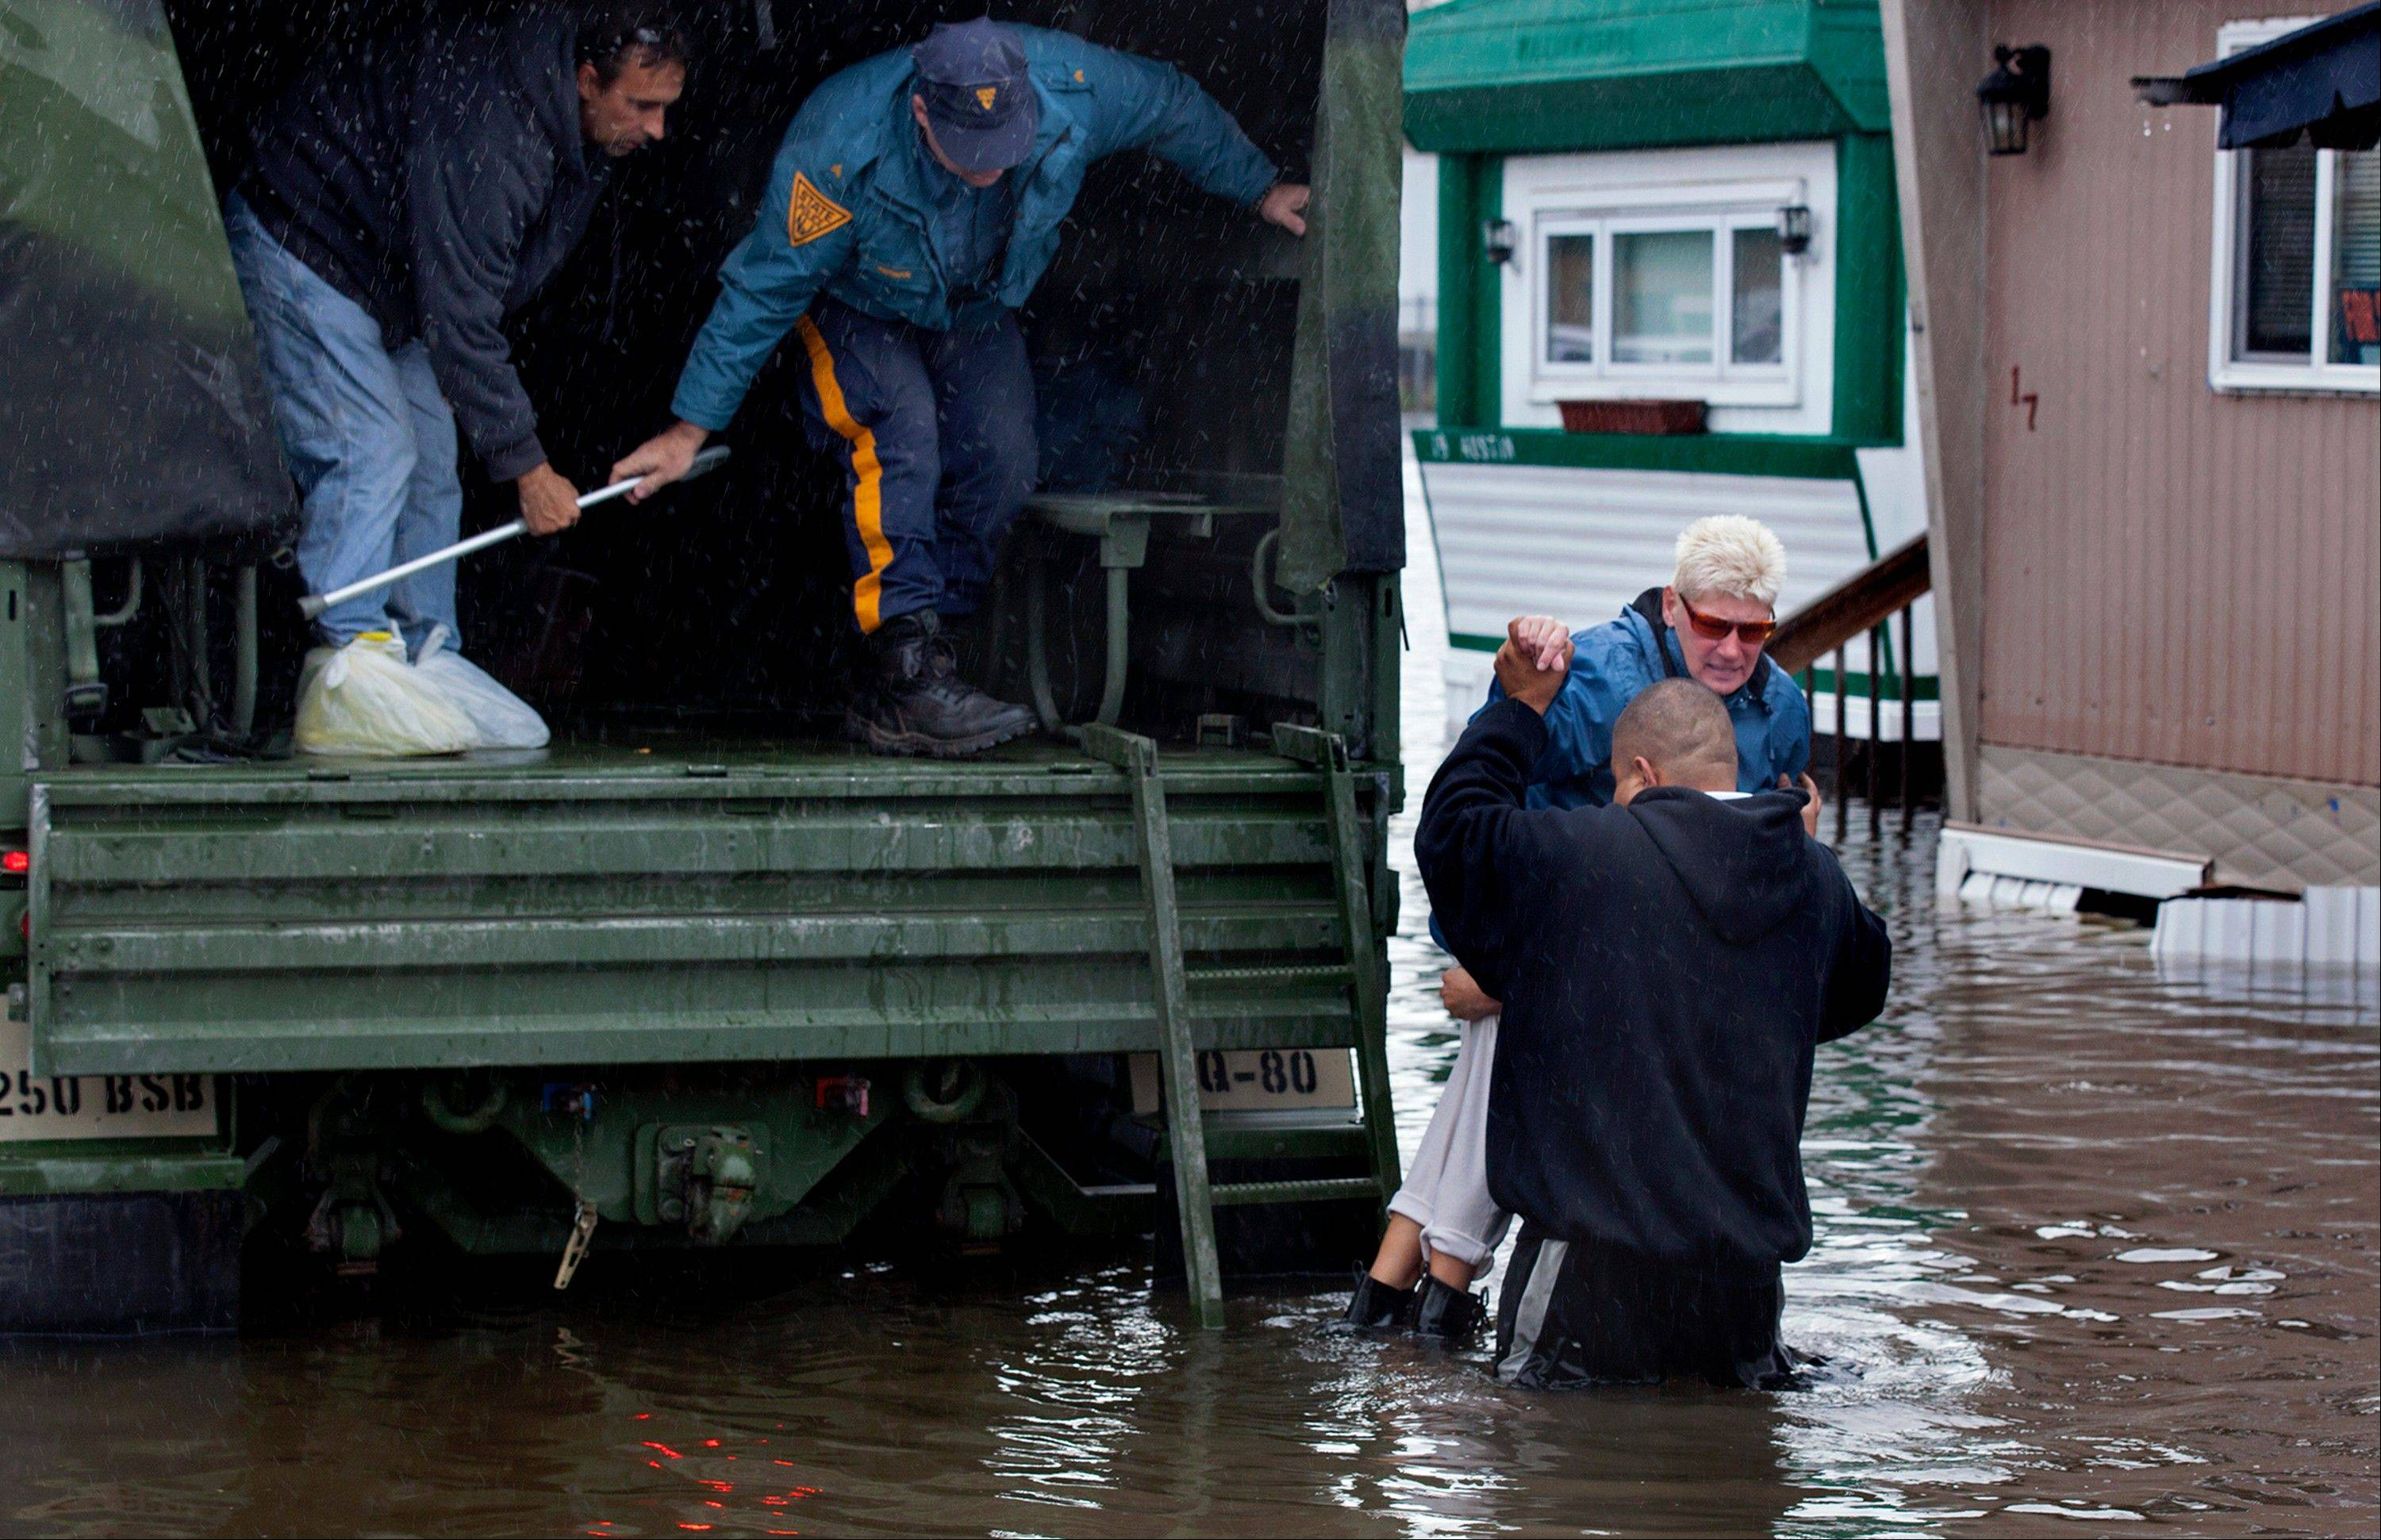 A woman is lifted into a National Guard vehicle after leaving her flooded home at the Metropolitan Trailer Park in Moonachie, N.J. Tuesday, Oct. 30, 2012, after supsterstorm Sandy. Sandy, which was downgraded from hurricane just before making landfall, caused multiple fatalities, halted mass transit and cut power to more than 6 million homes and businesses.